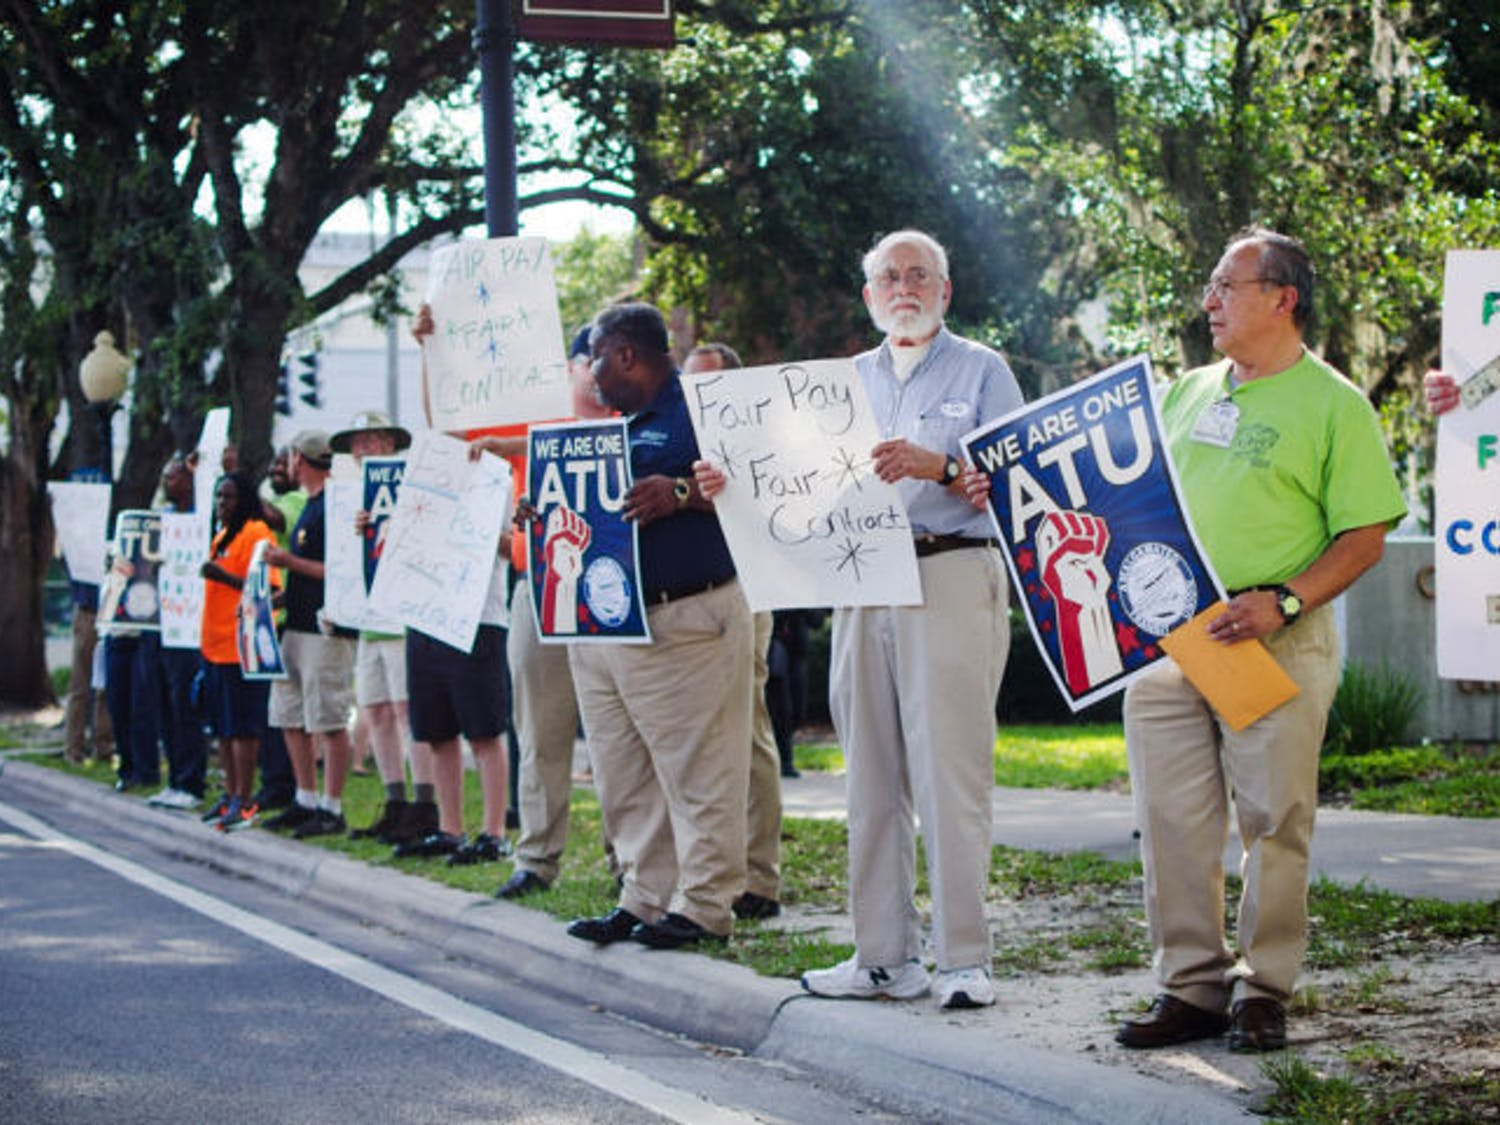 Power to the People - Antonio Cruz, 59, pictured right, joined the Amalgamated Transit Union in rallying support for the fair pay of RTS employees outside city hall on Thursday . Soon thereafter, the AT Union voiced their concerns at the city commission meeting.